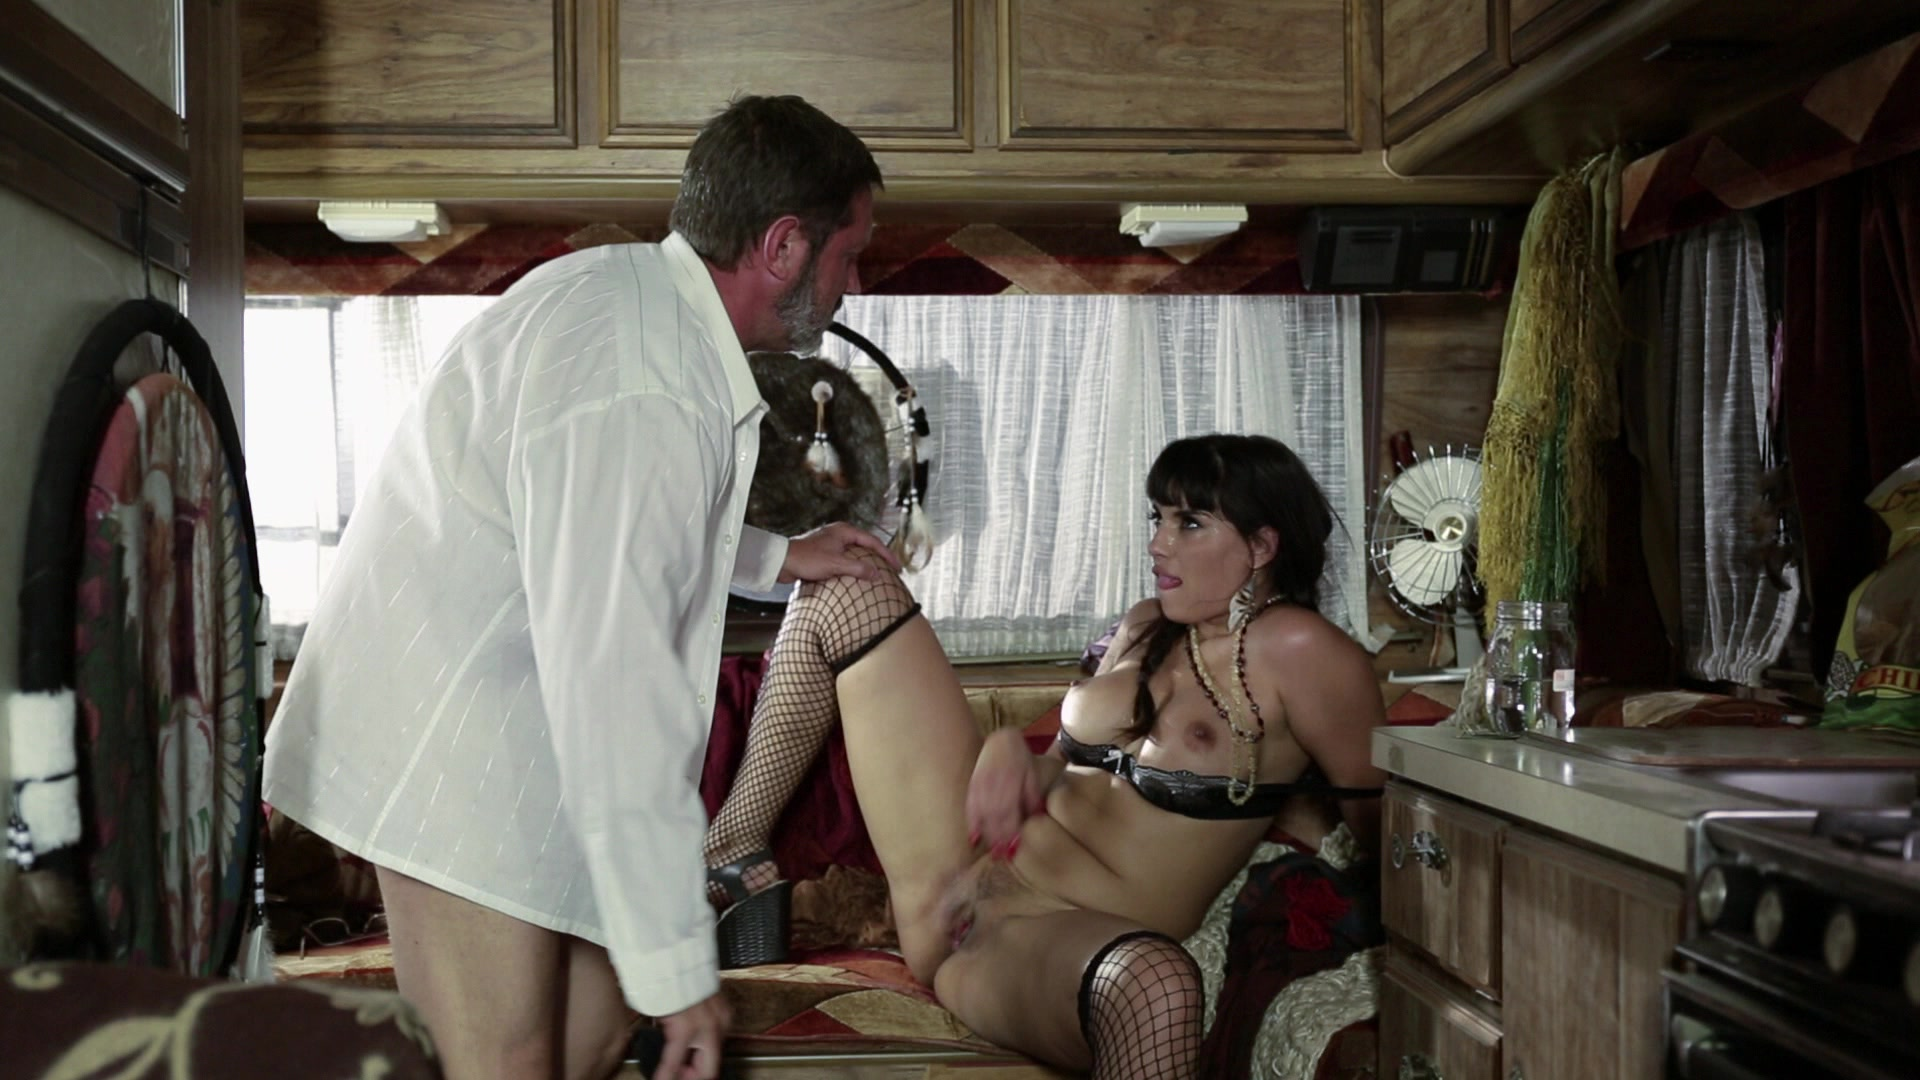 Scene with Brad Armstrong and Mercedes Carrera - image 20 out of 20